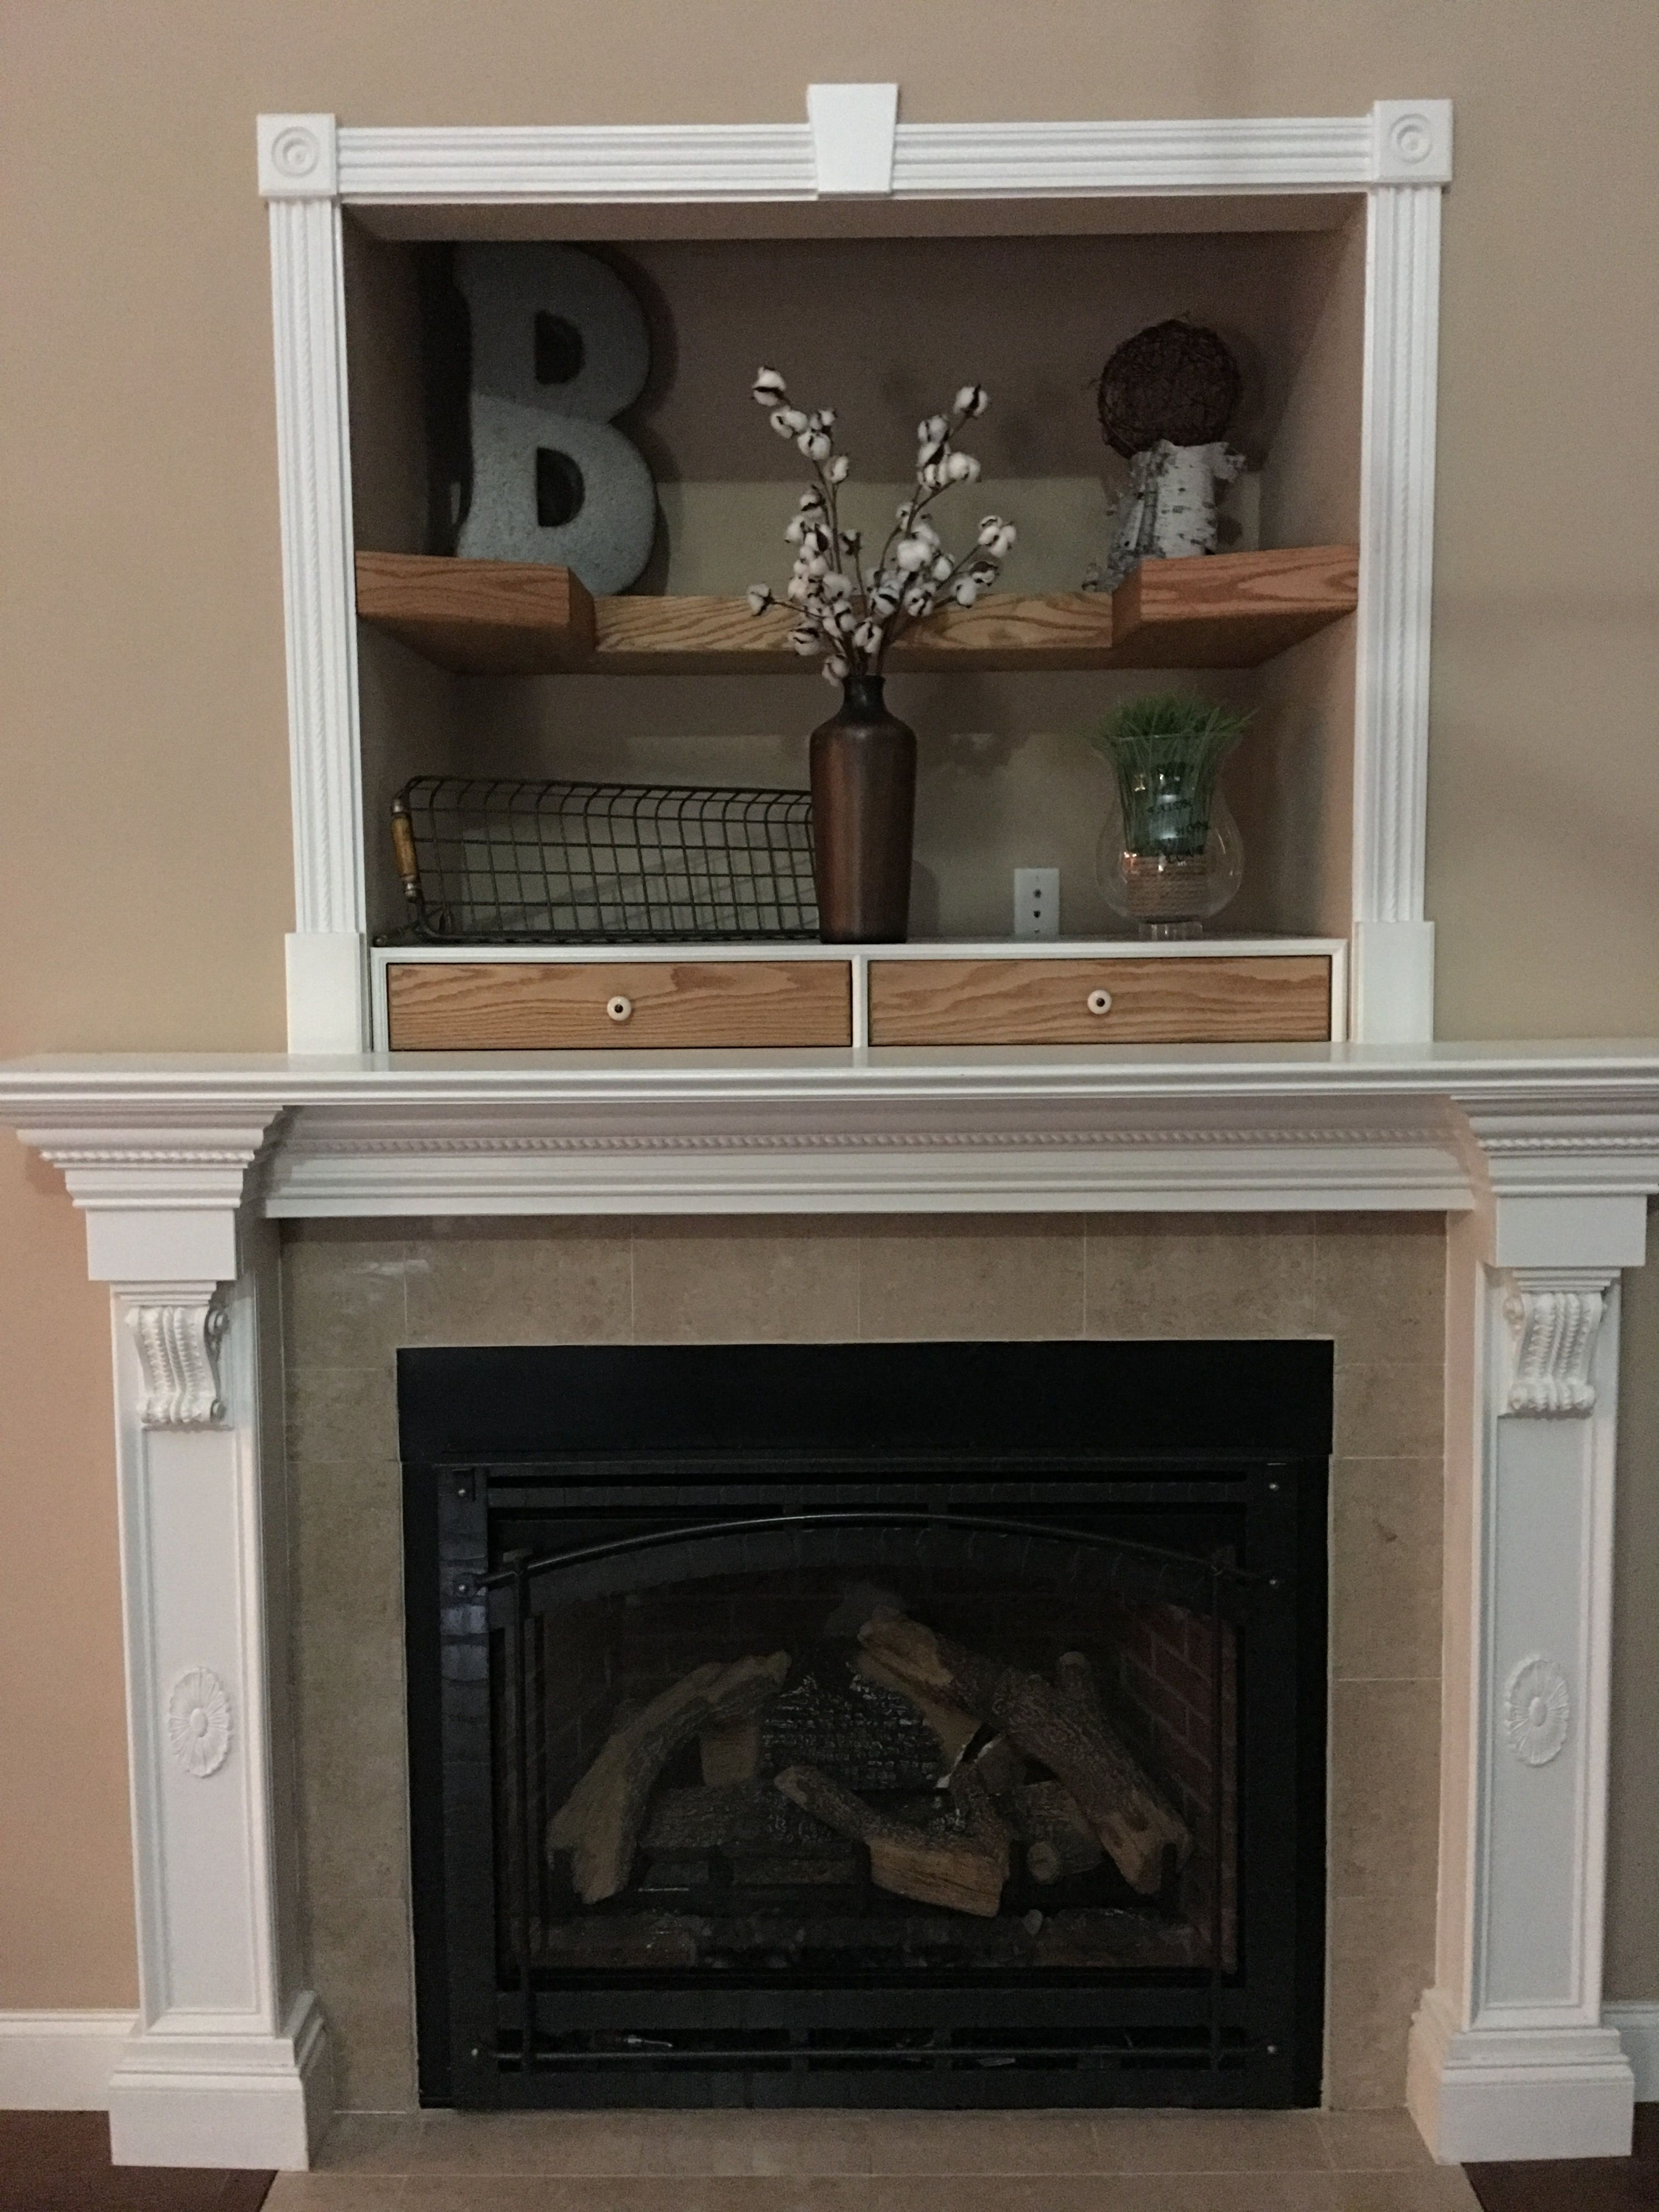 fireplace nook our new house in 2019 living room decor, aboveDecorations Above New Tv In Nook #16